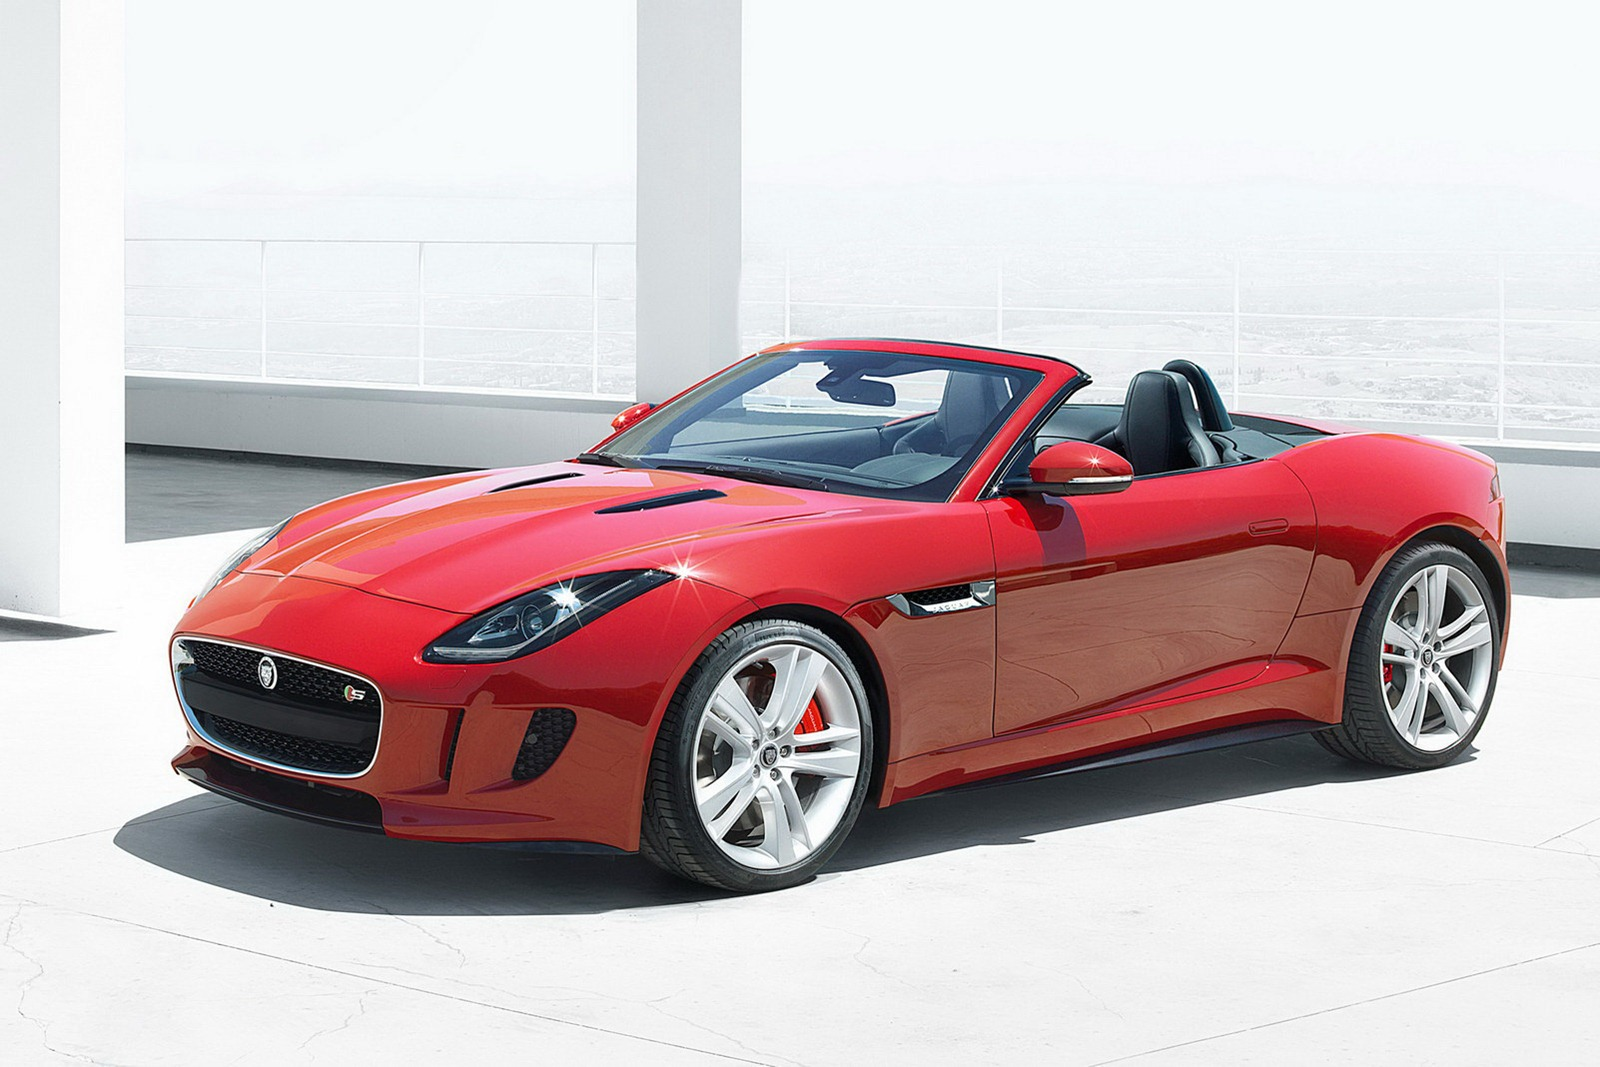 new 2013 jaguar f type roadster price starts at 69 000 autotribute. Black Bedroom Furniture Sets. Home Design Ideas